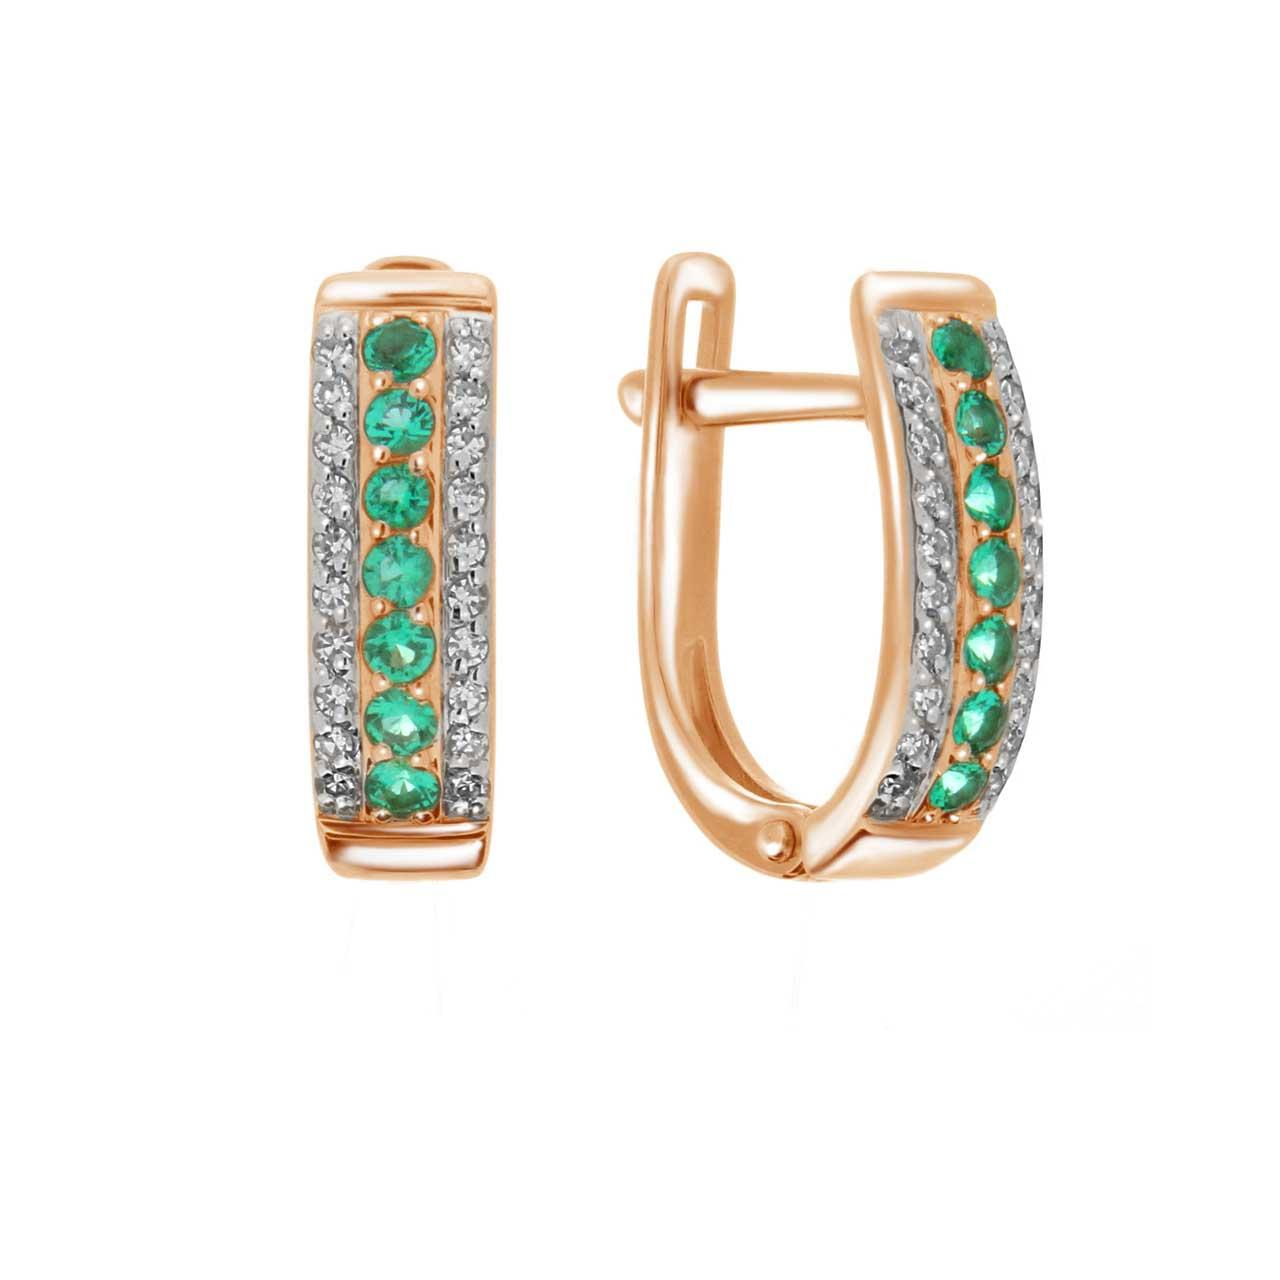 Emerald rose gold earrings 1